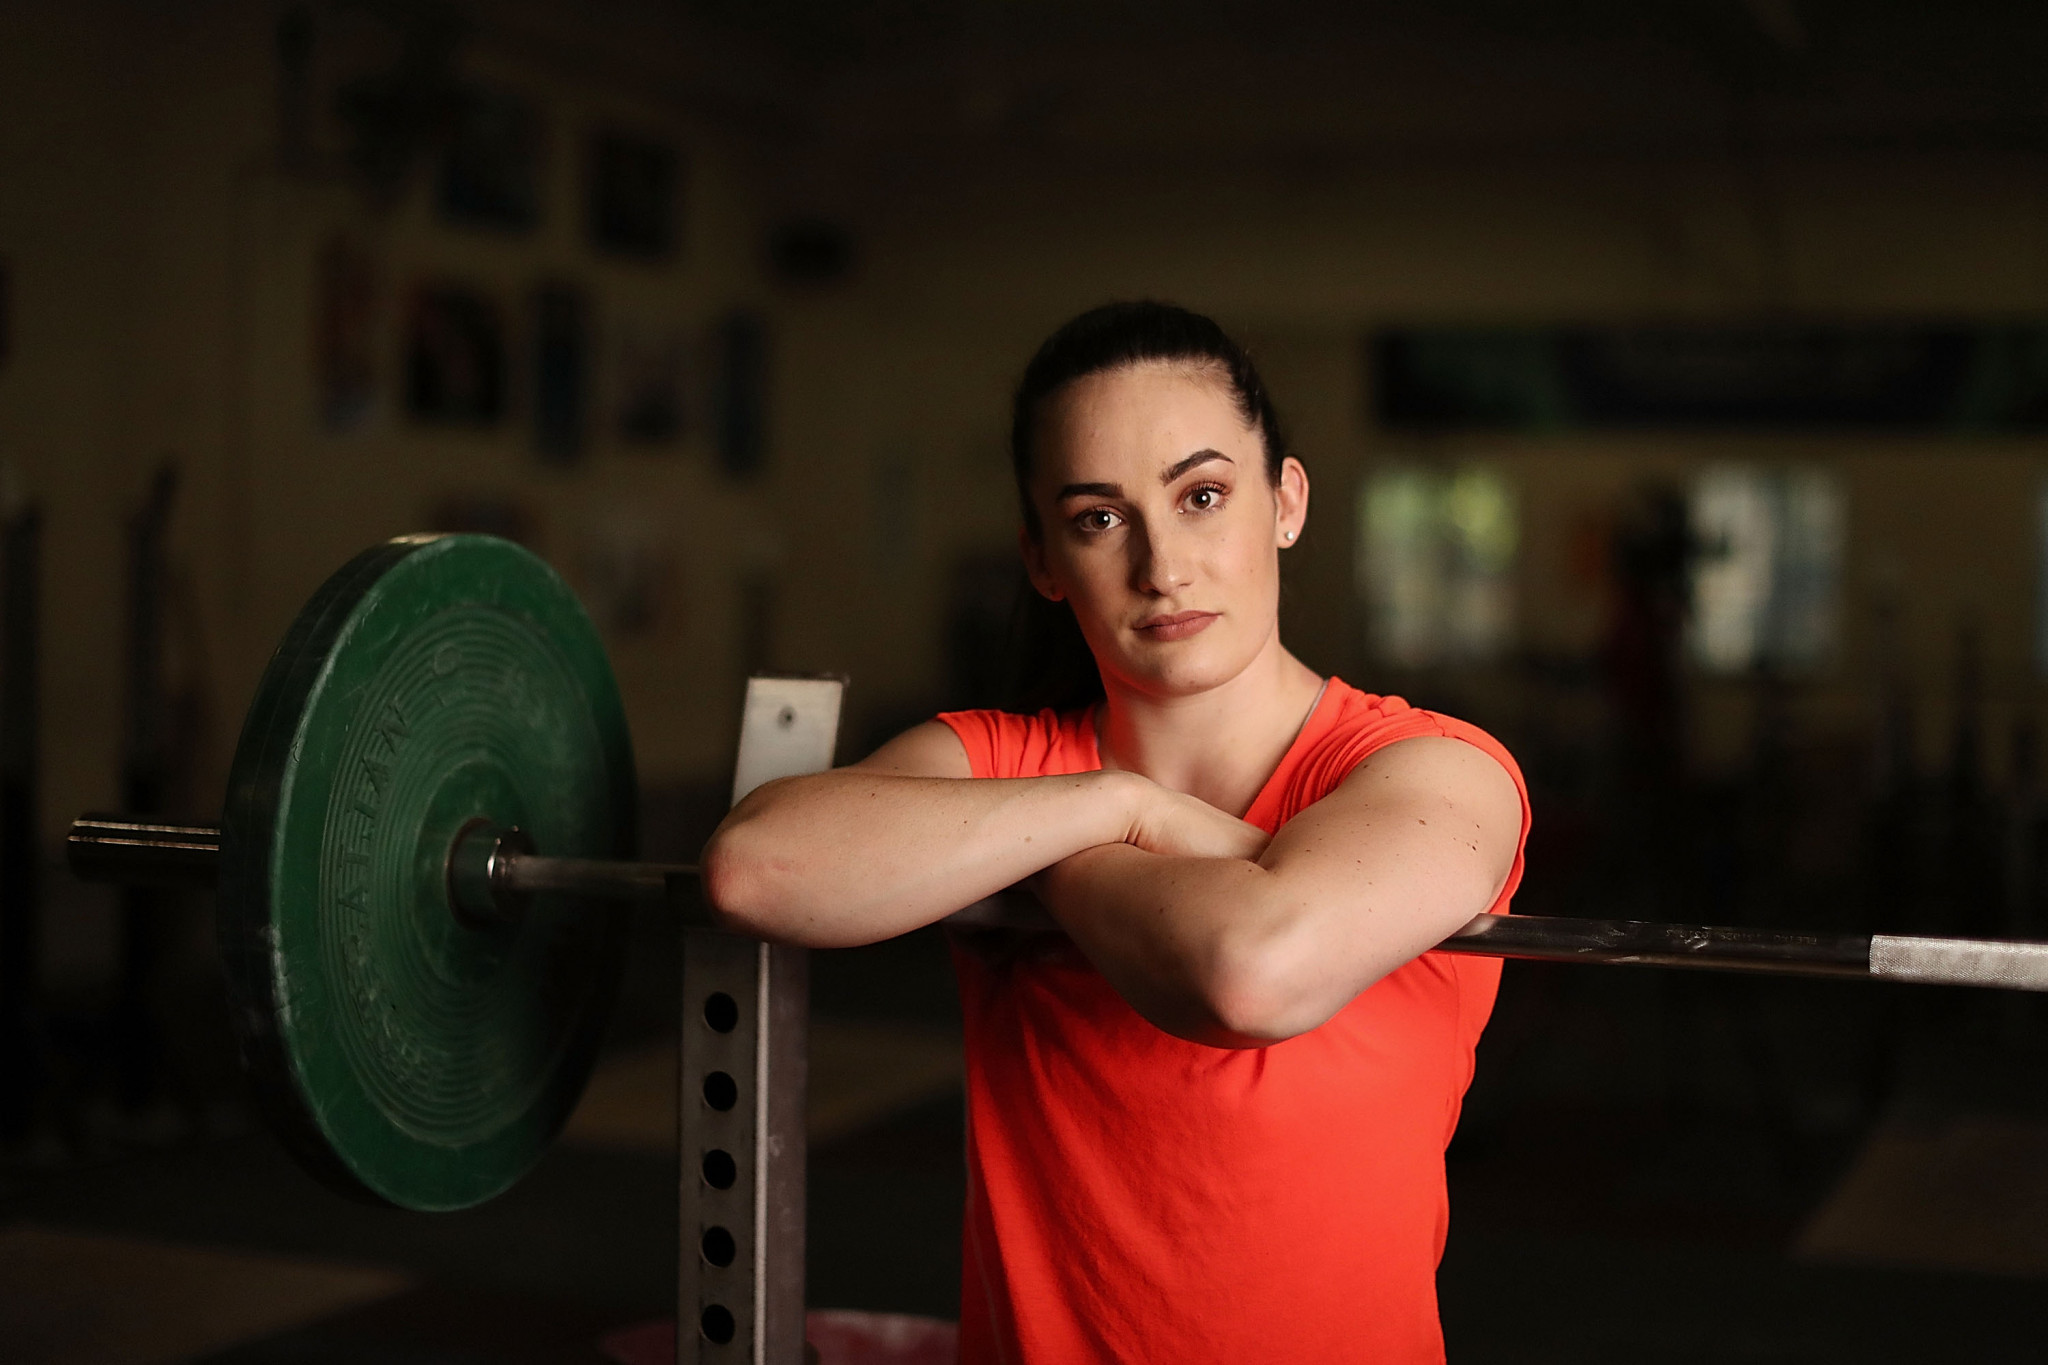 Sarah Davies, chair of the IWF Athletes' Commission, produced a career-best performance at the European Weightlifting Championships this week ©Getty Images